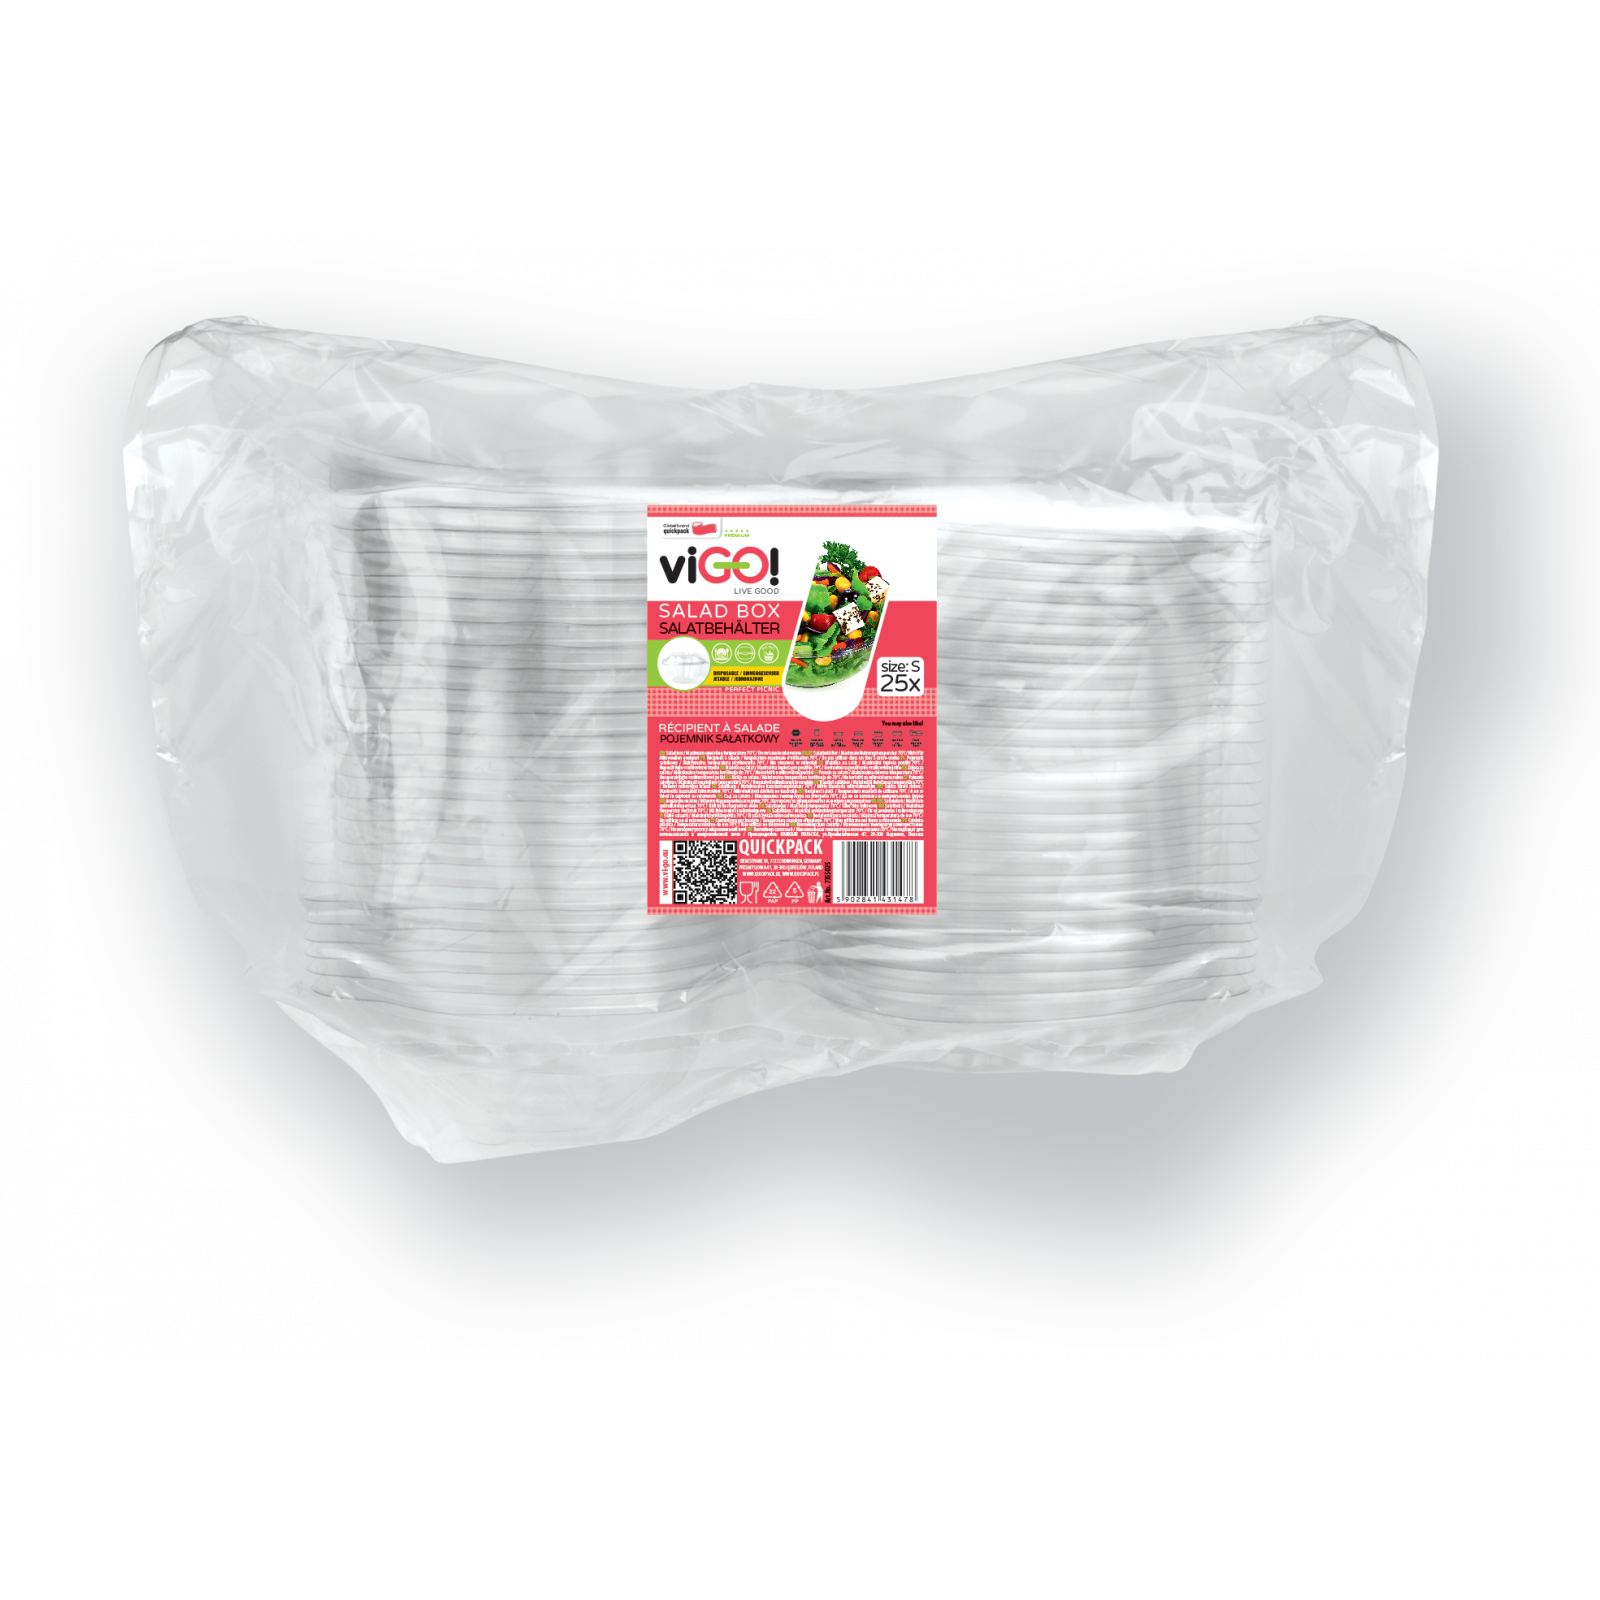 A salad container size S-25 pieces